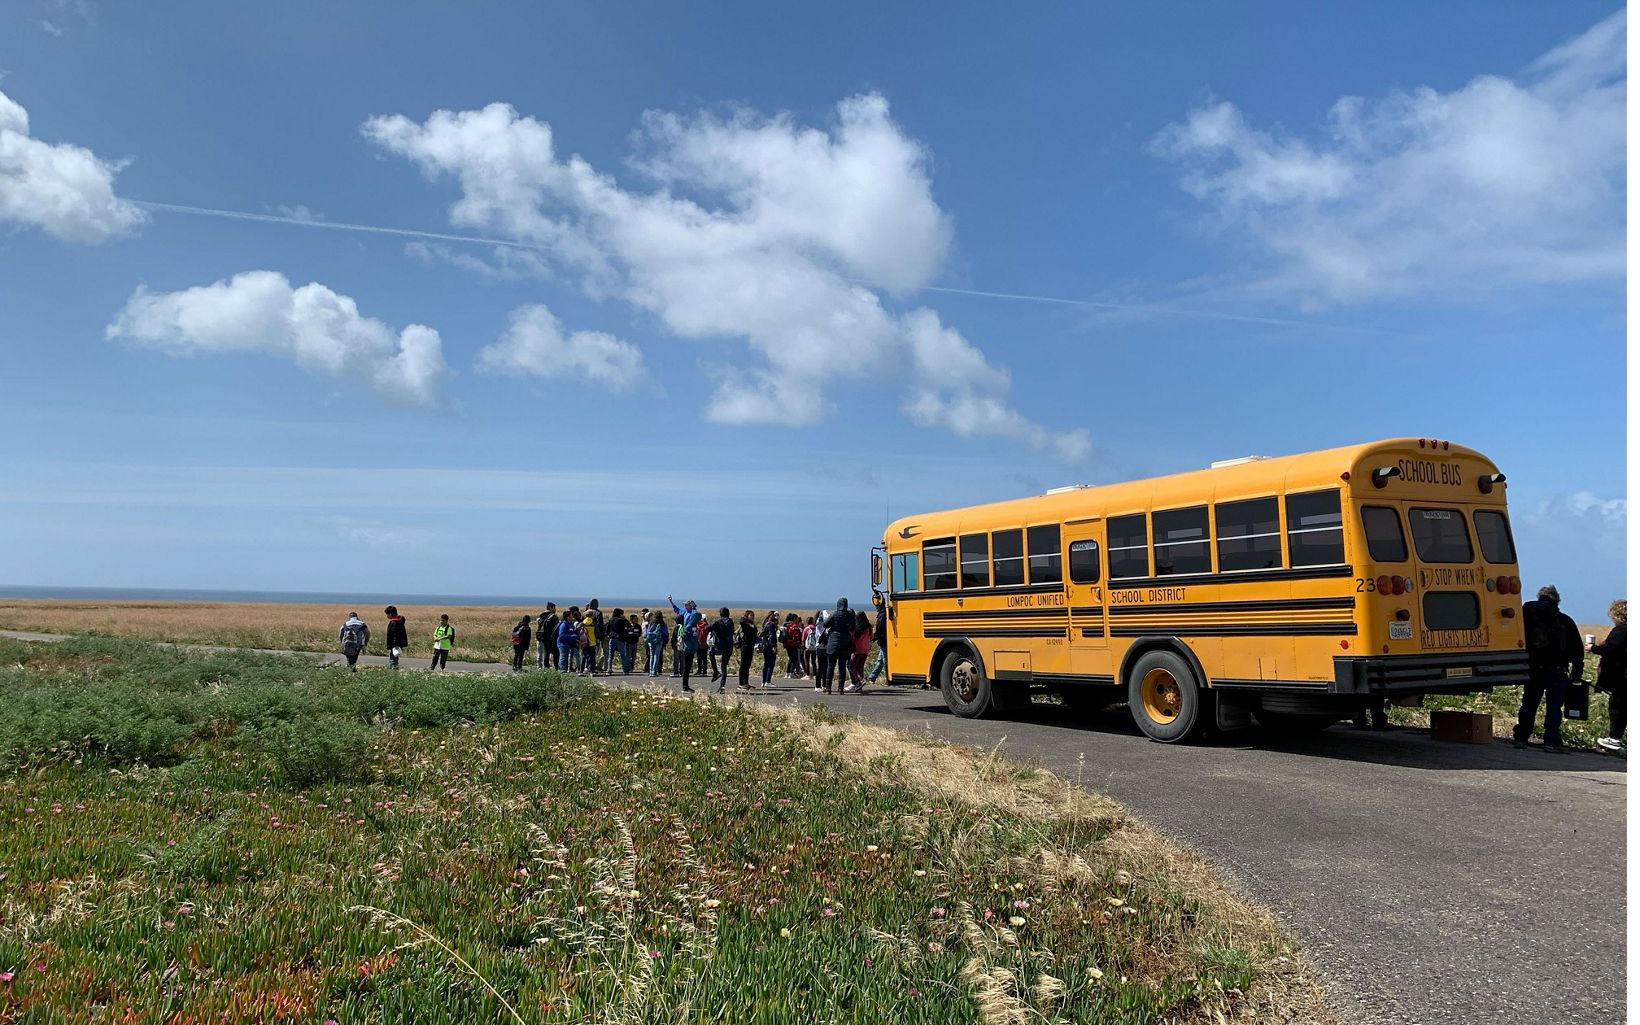 Fourth graders from Lahonda arrive at the preserve for an environmental education program.